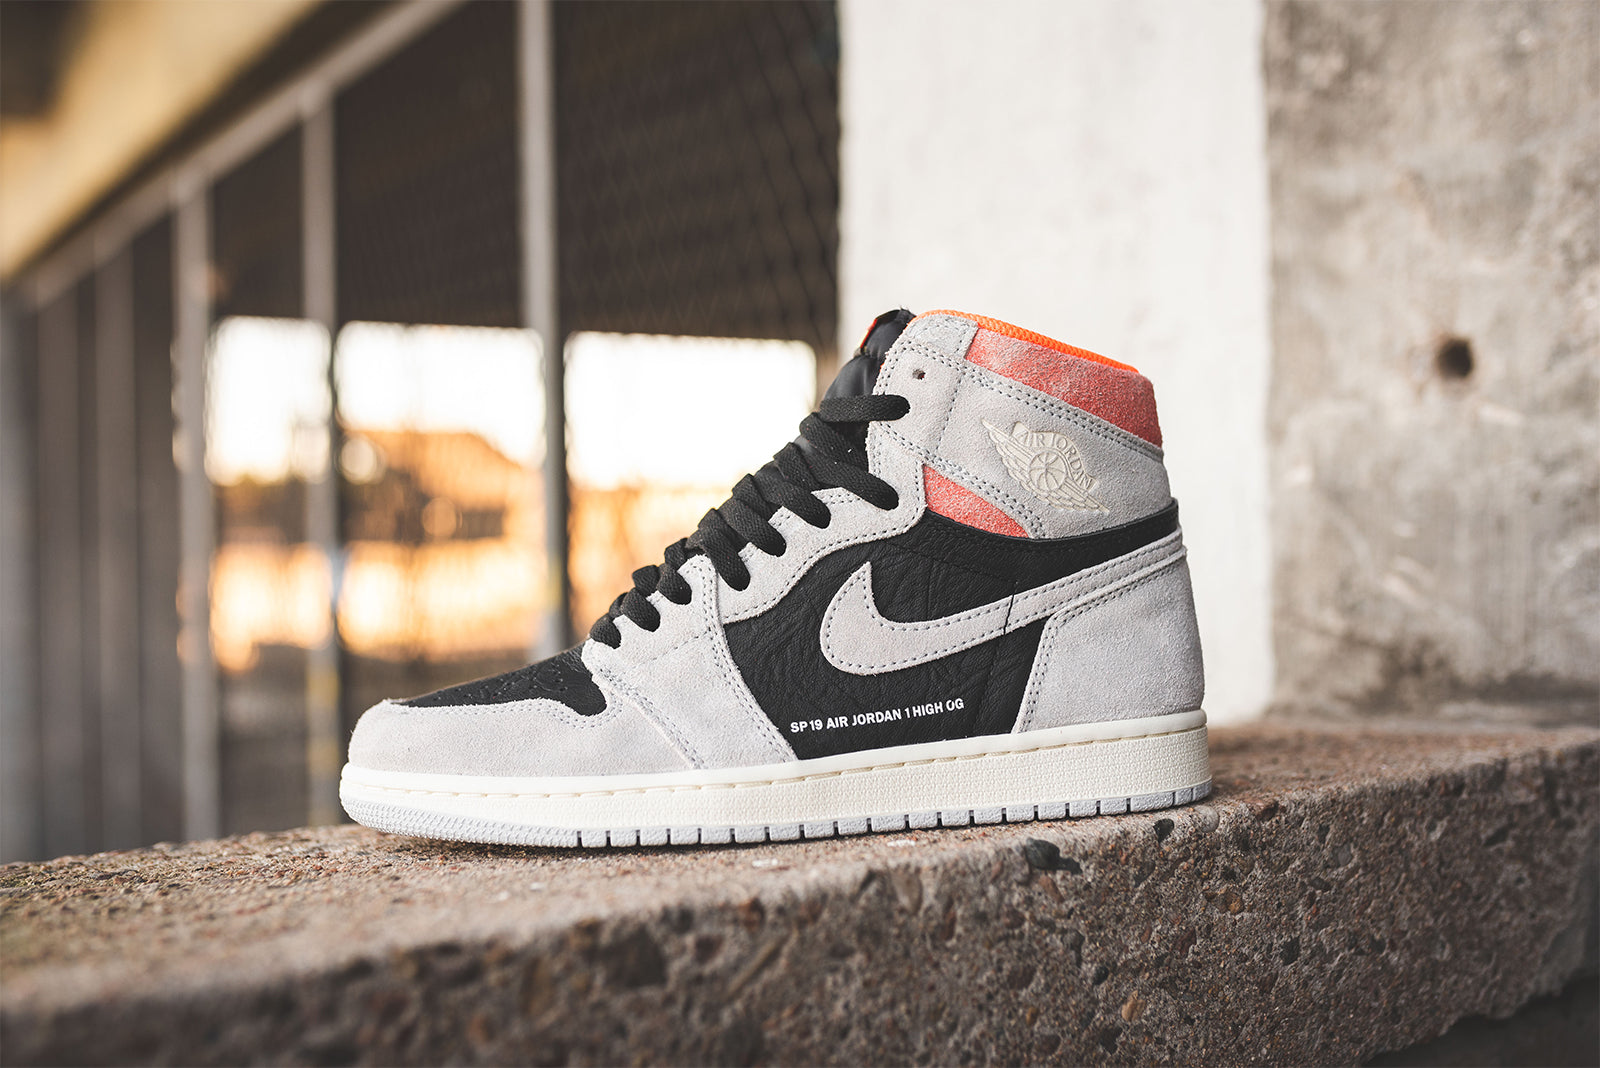 3279d36b54fdc5 Nike Air Jordan 1 Retro High OG 555088-018. Neutral Grey Black-Hyper Crimson -White Price  £129.00